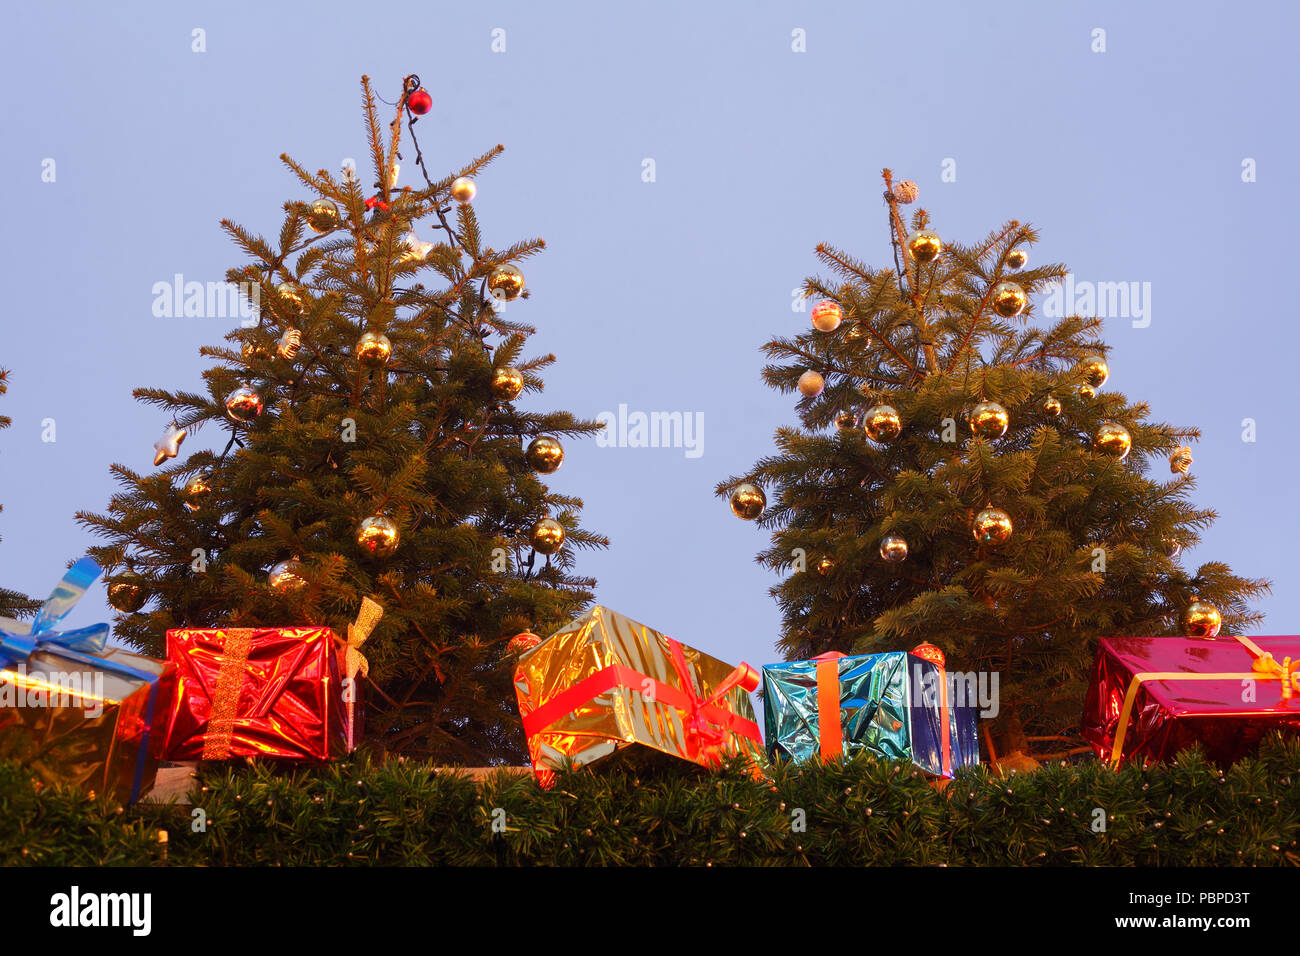 Illuminated fir trees and Christmas packages, Christmas decoration at dusk, Bremen, Germany, Europe  I Beleuchtete Tannenbäume und  Weihnachtspakete,  - Stock Image